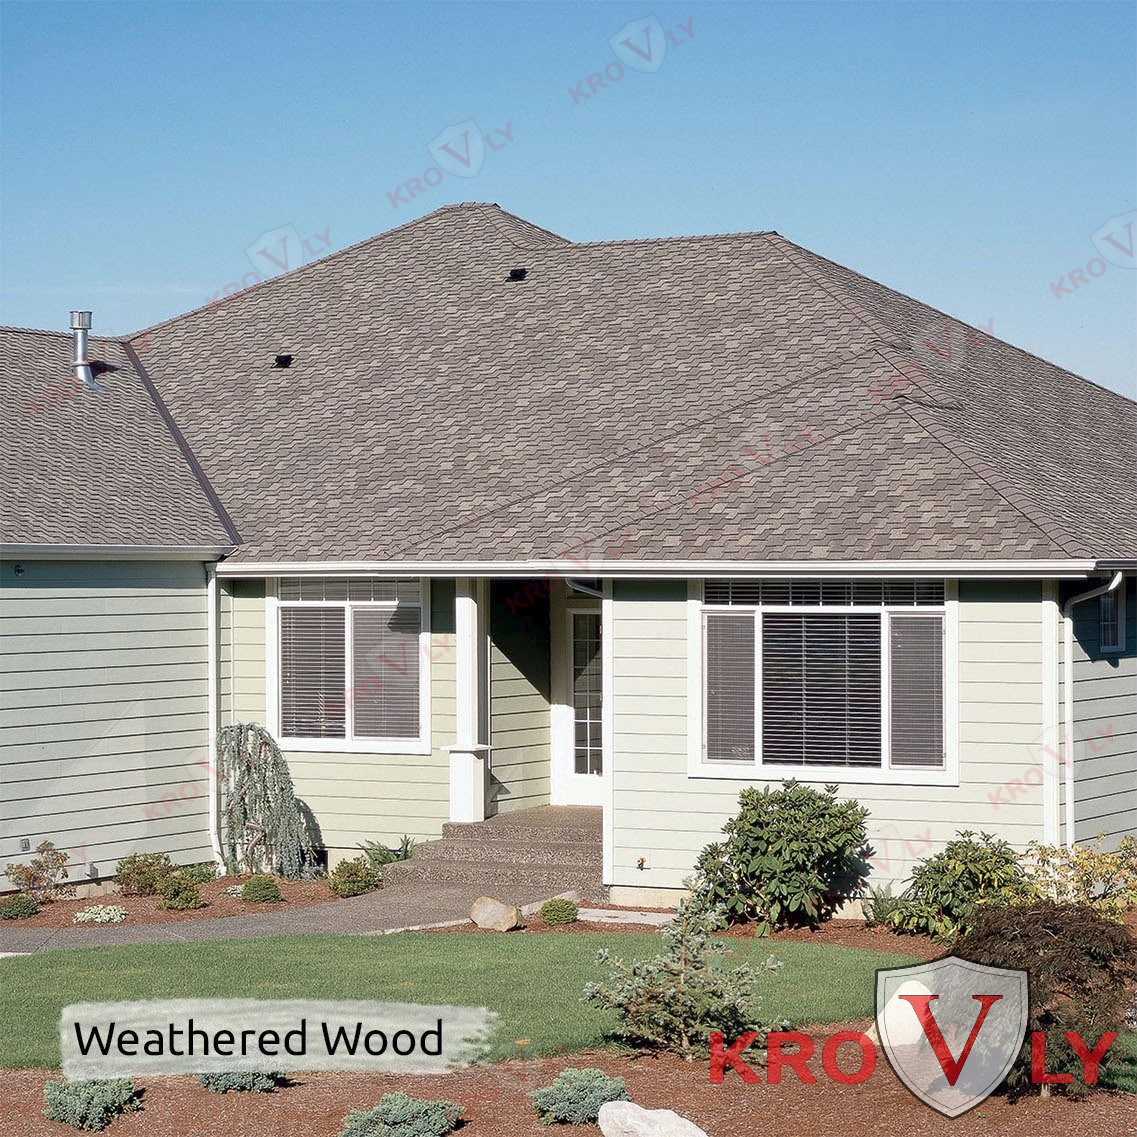 Mission brown timberline shingles pictures The Old Fashioned: Easy To Make Well At Home, Easy